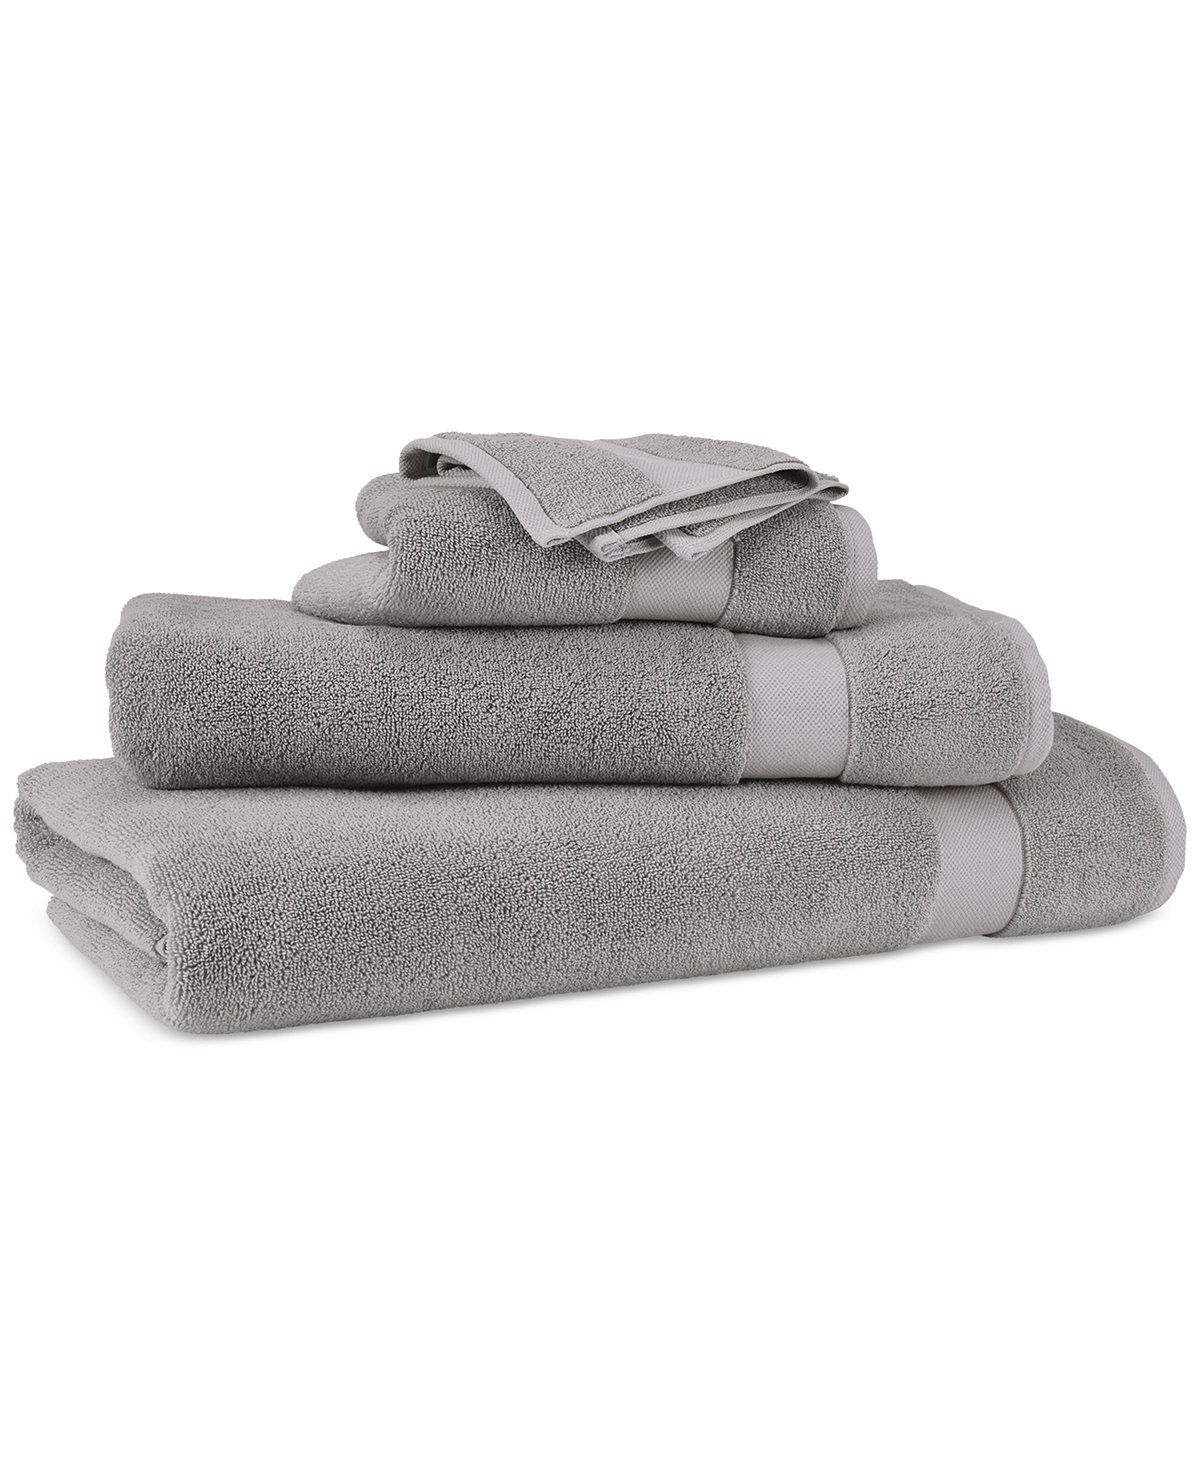 Lauren Ralph Lauren Price Break Wescott 13 X 13 Wash Towel